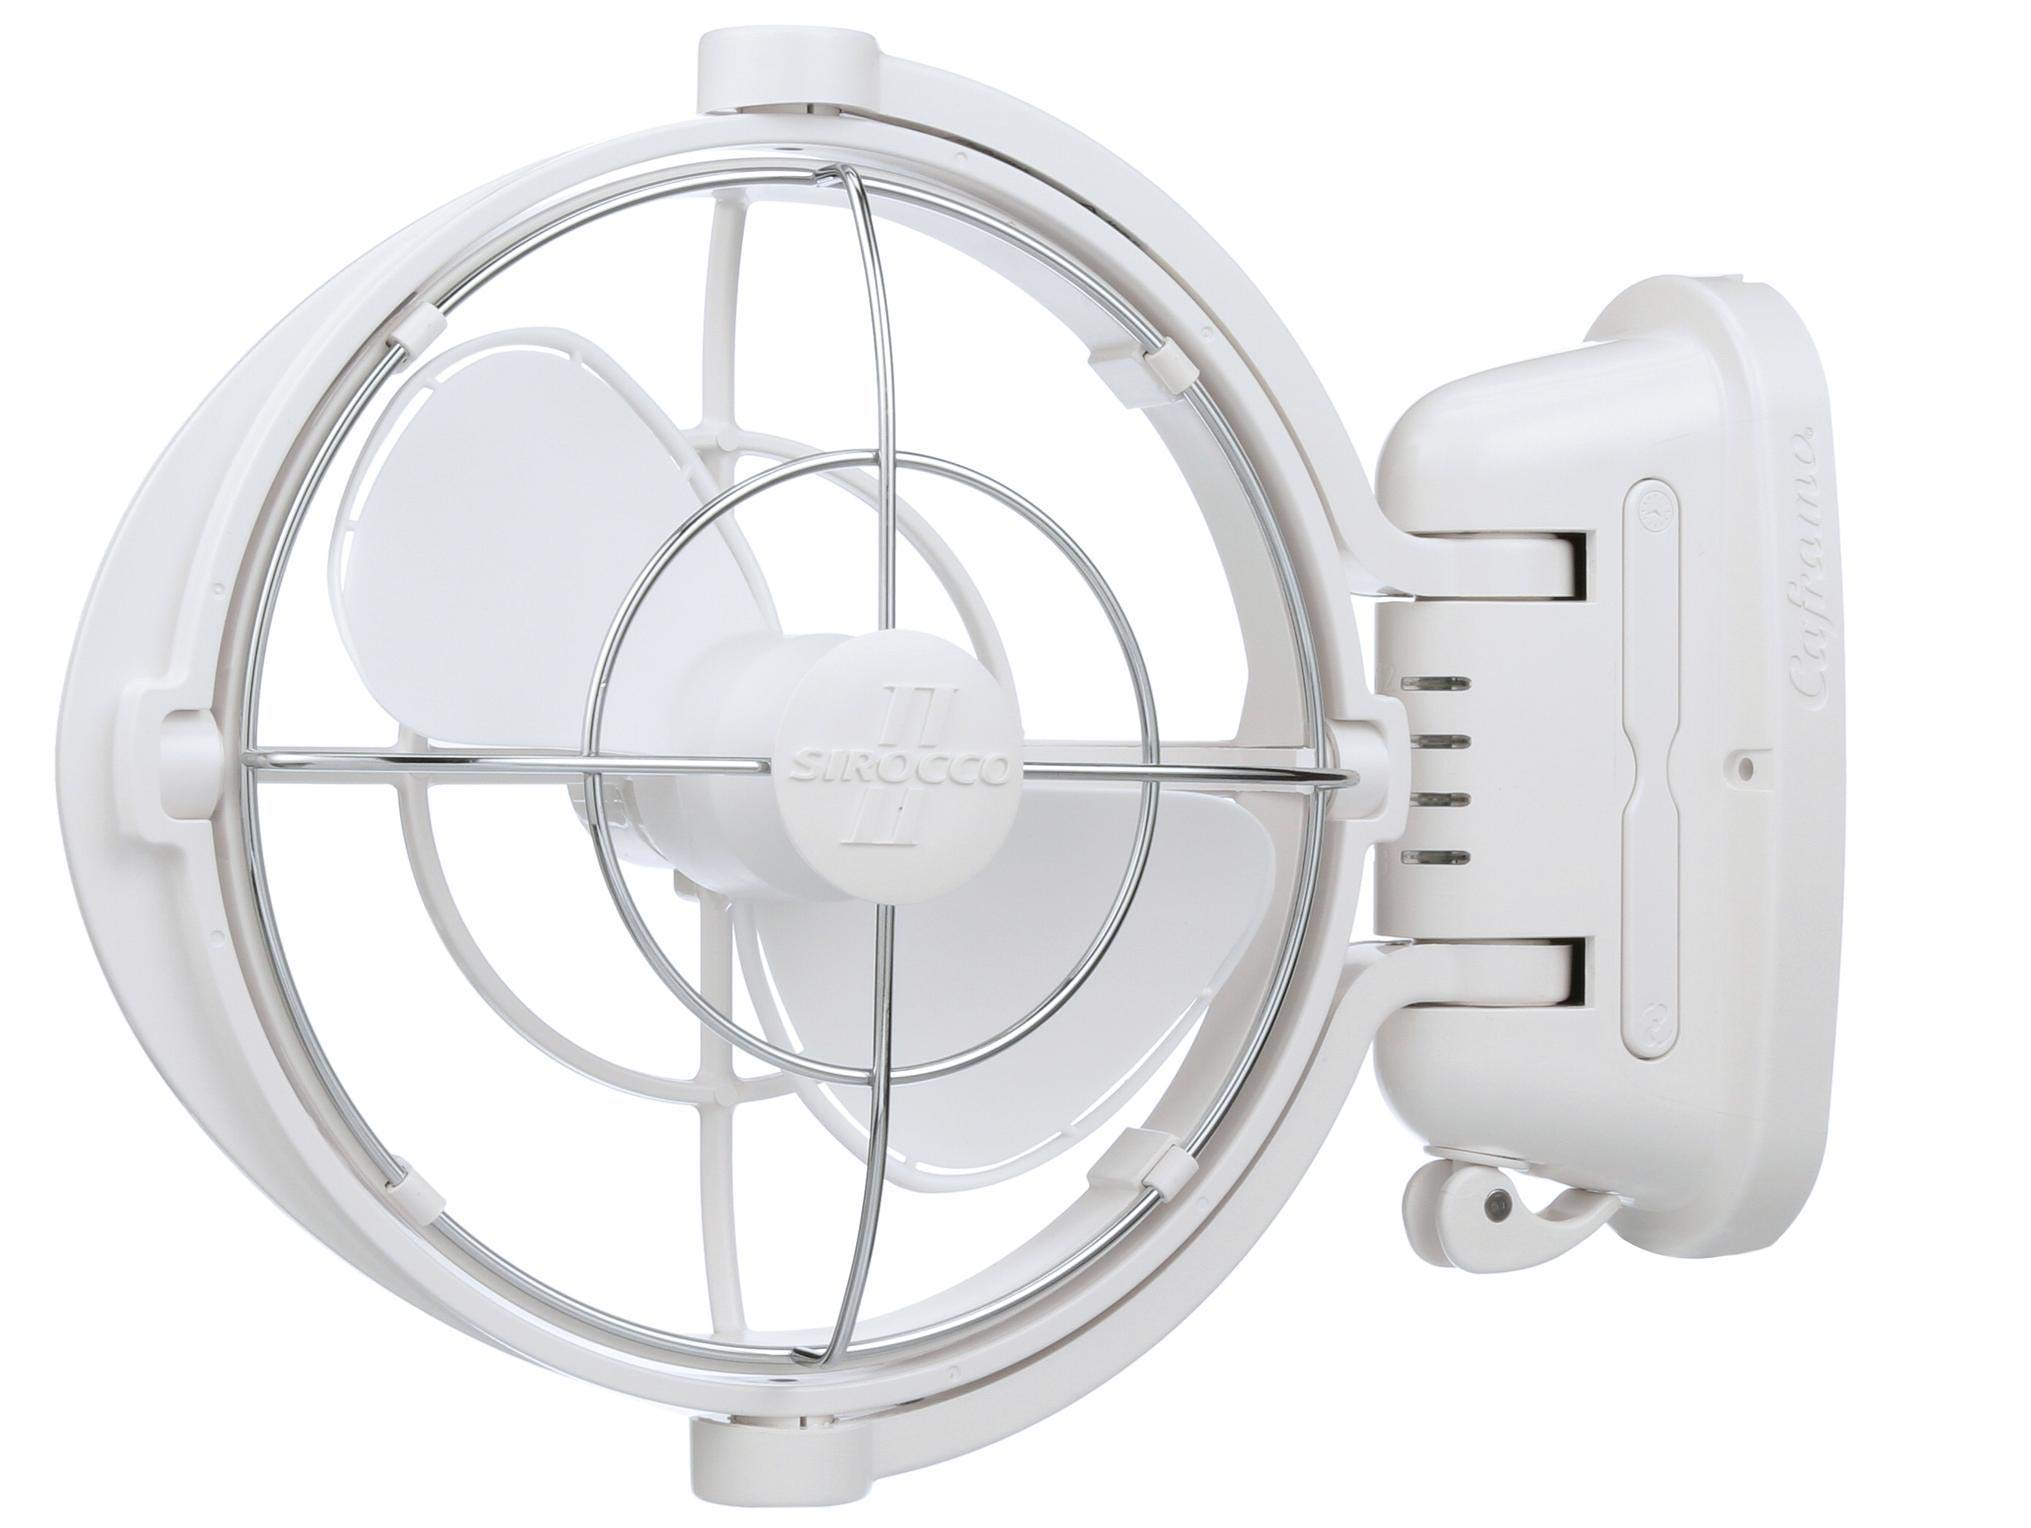 Caframo Sirocco II. Mounted Fan. 360 Airflow. Ultra Quiet, 12/24V Compatible. White. by Caframo